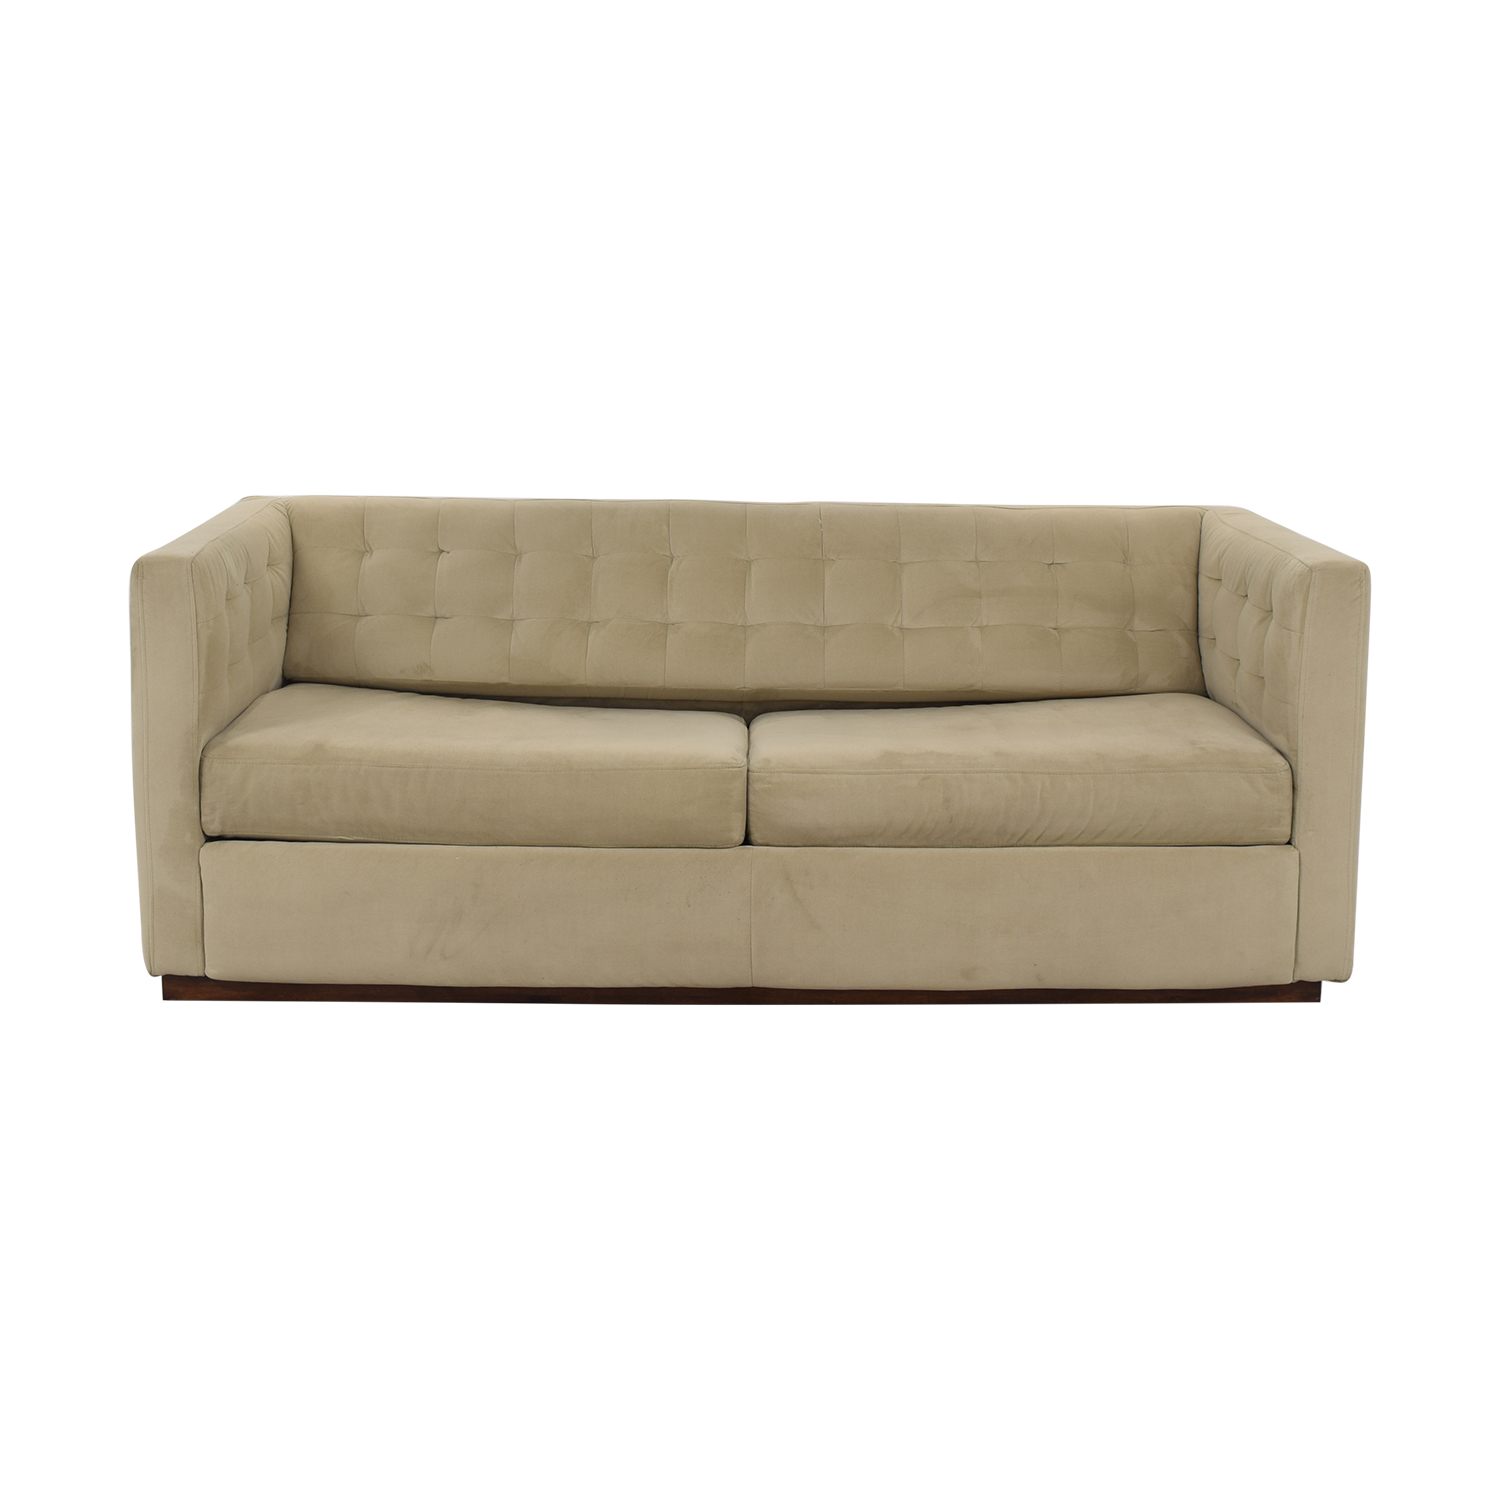 Surprising 26 Off West Elm West Elm Rochester Deluxe Queen Sleeper Sofa Sofas Short Links Chair Design For Home Short Linksinfo